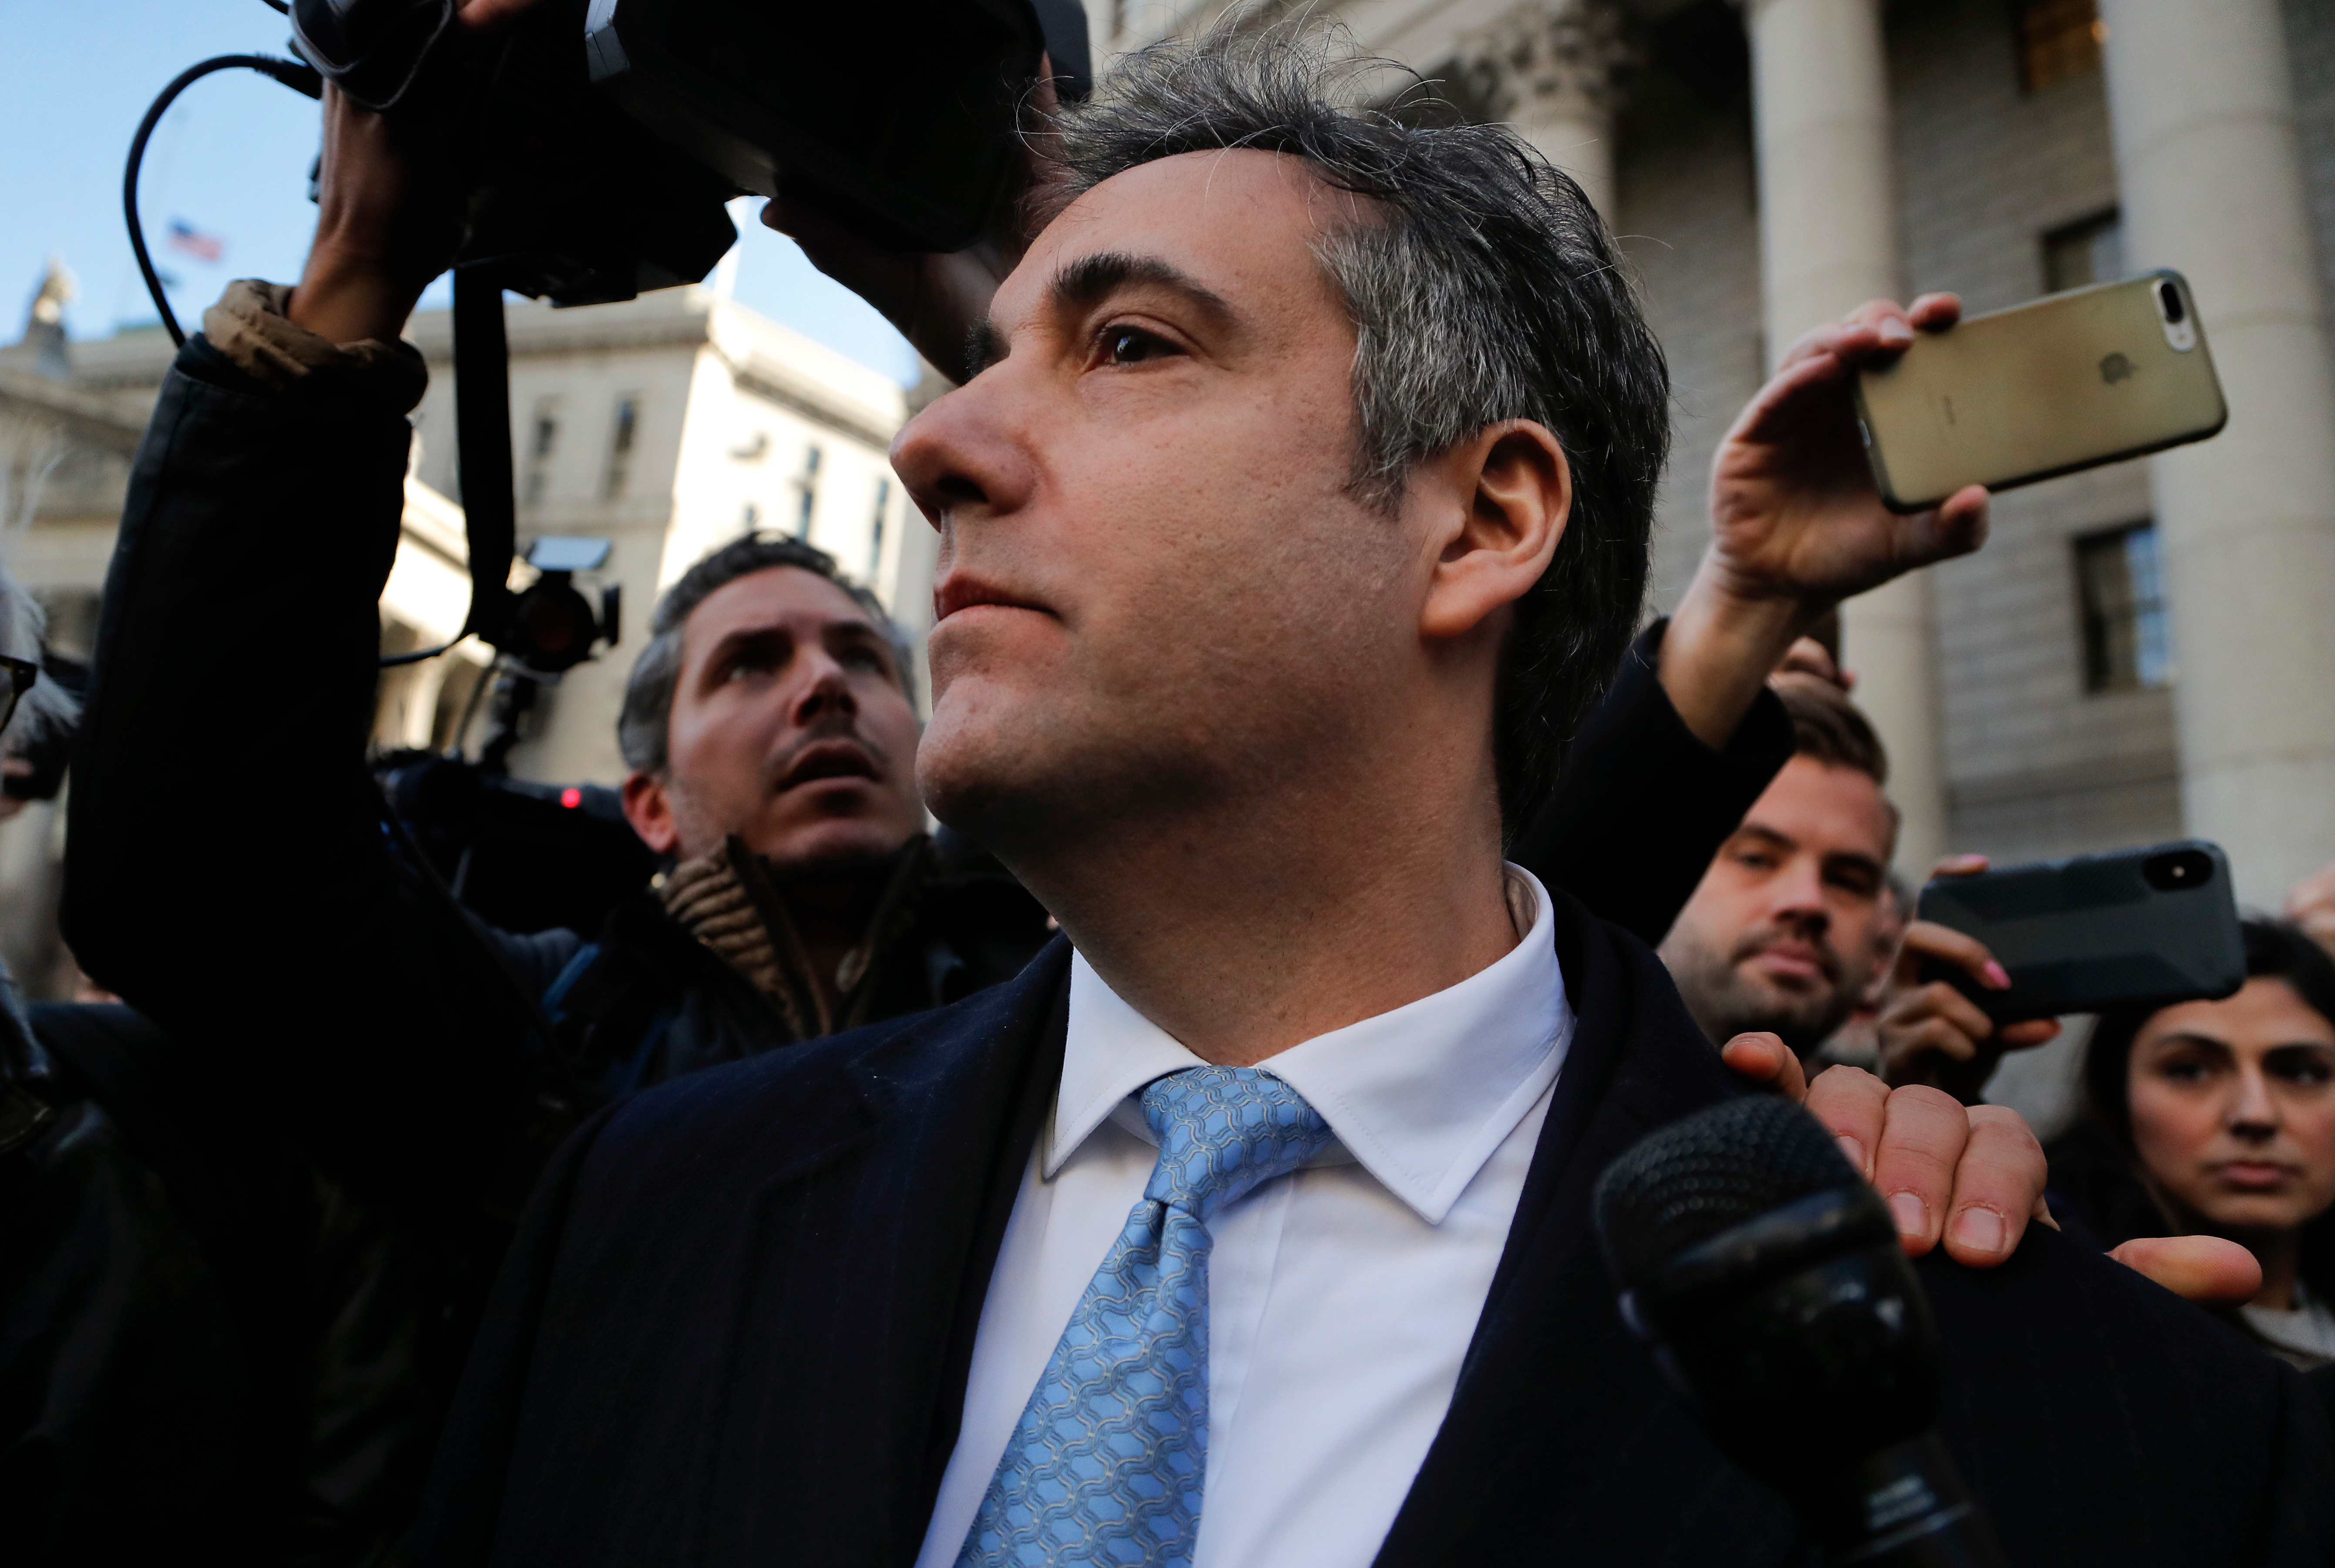 Michael Cohen walks out of federal court, in New York, after pleading guilty to lying to Congress about work he did on an aborted project to build a Trump Tower in Russia, on Nov. 29, 2018.